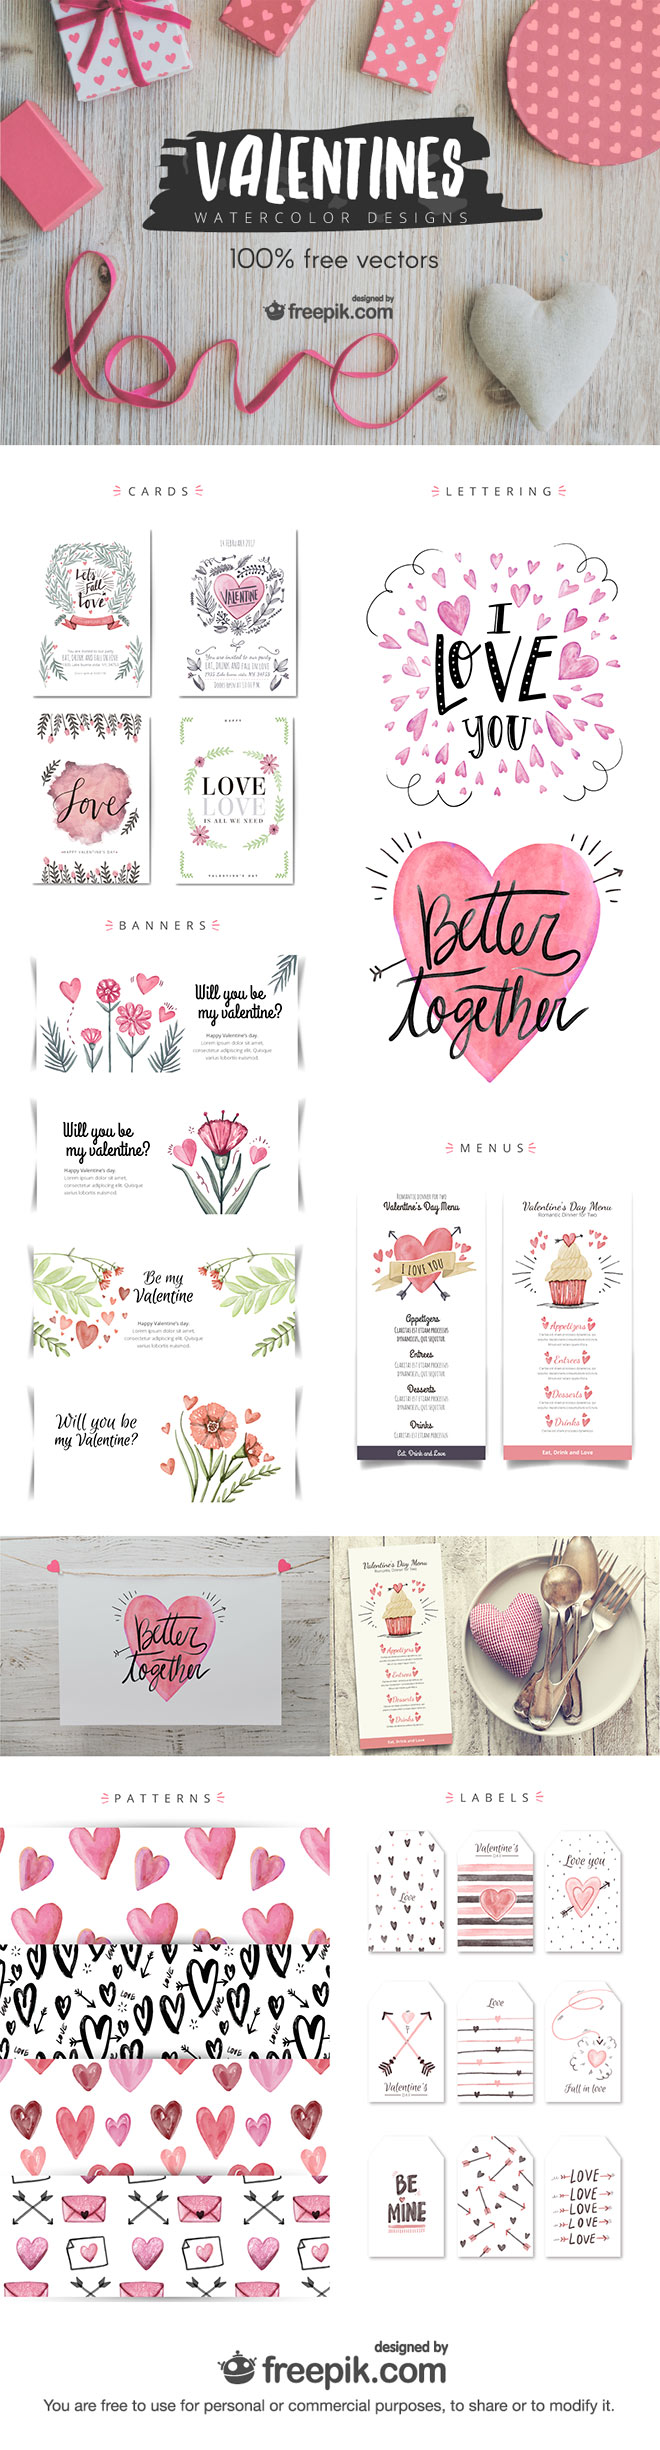 Valentines Watercolor Designs